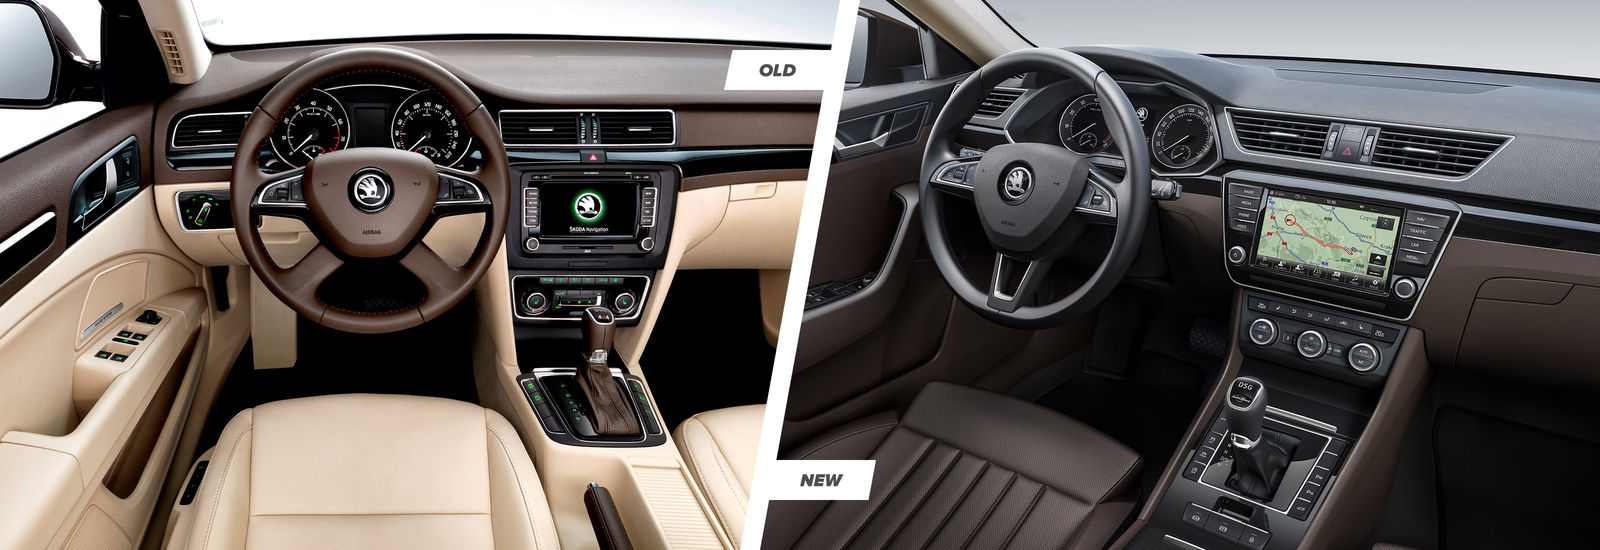 2015 Skoda Superb - old and new compared | carwow